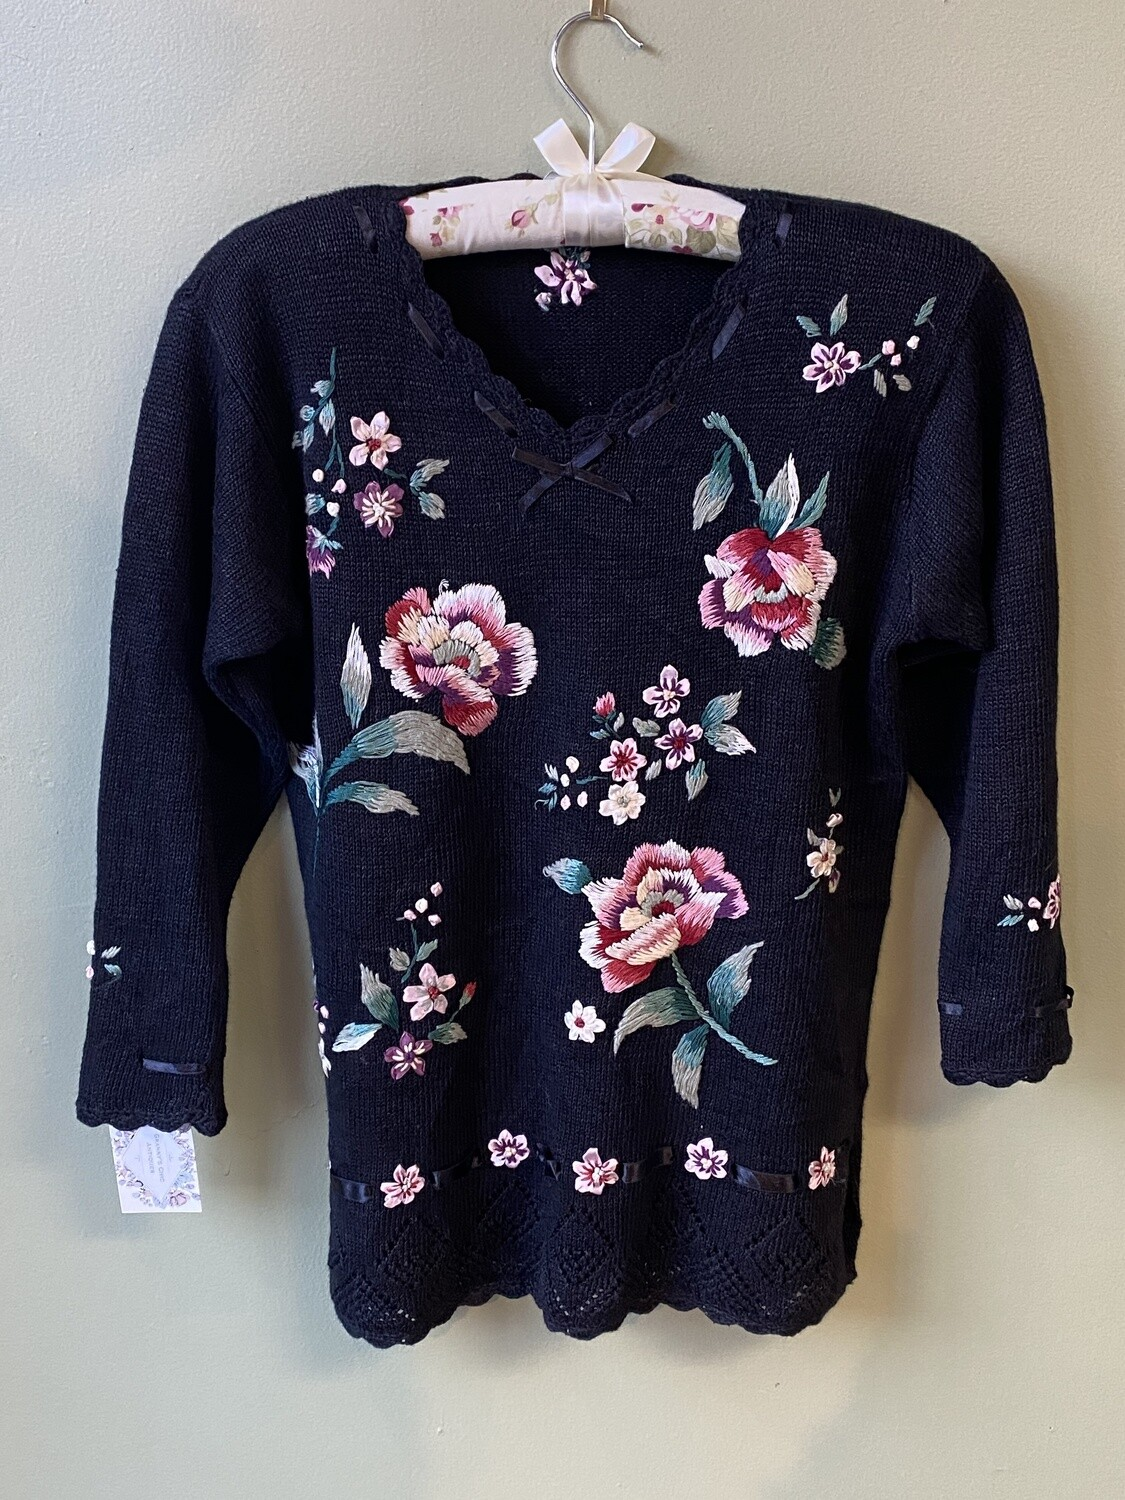 Vintage Cotton-blend Capacity Navy Sweater with Scalloped Sleeves, Roses, and Satin Ribbon Collar, Size Petite M